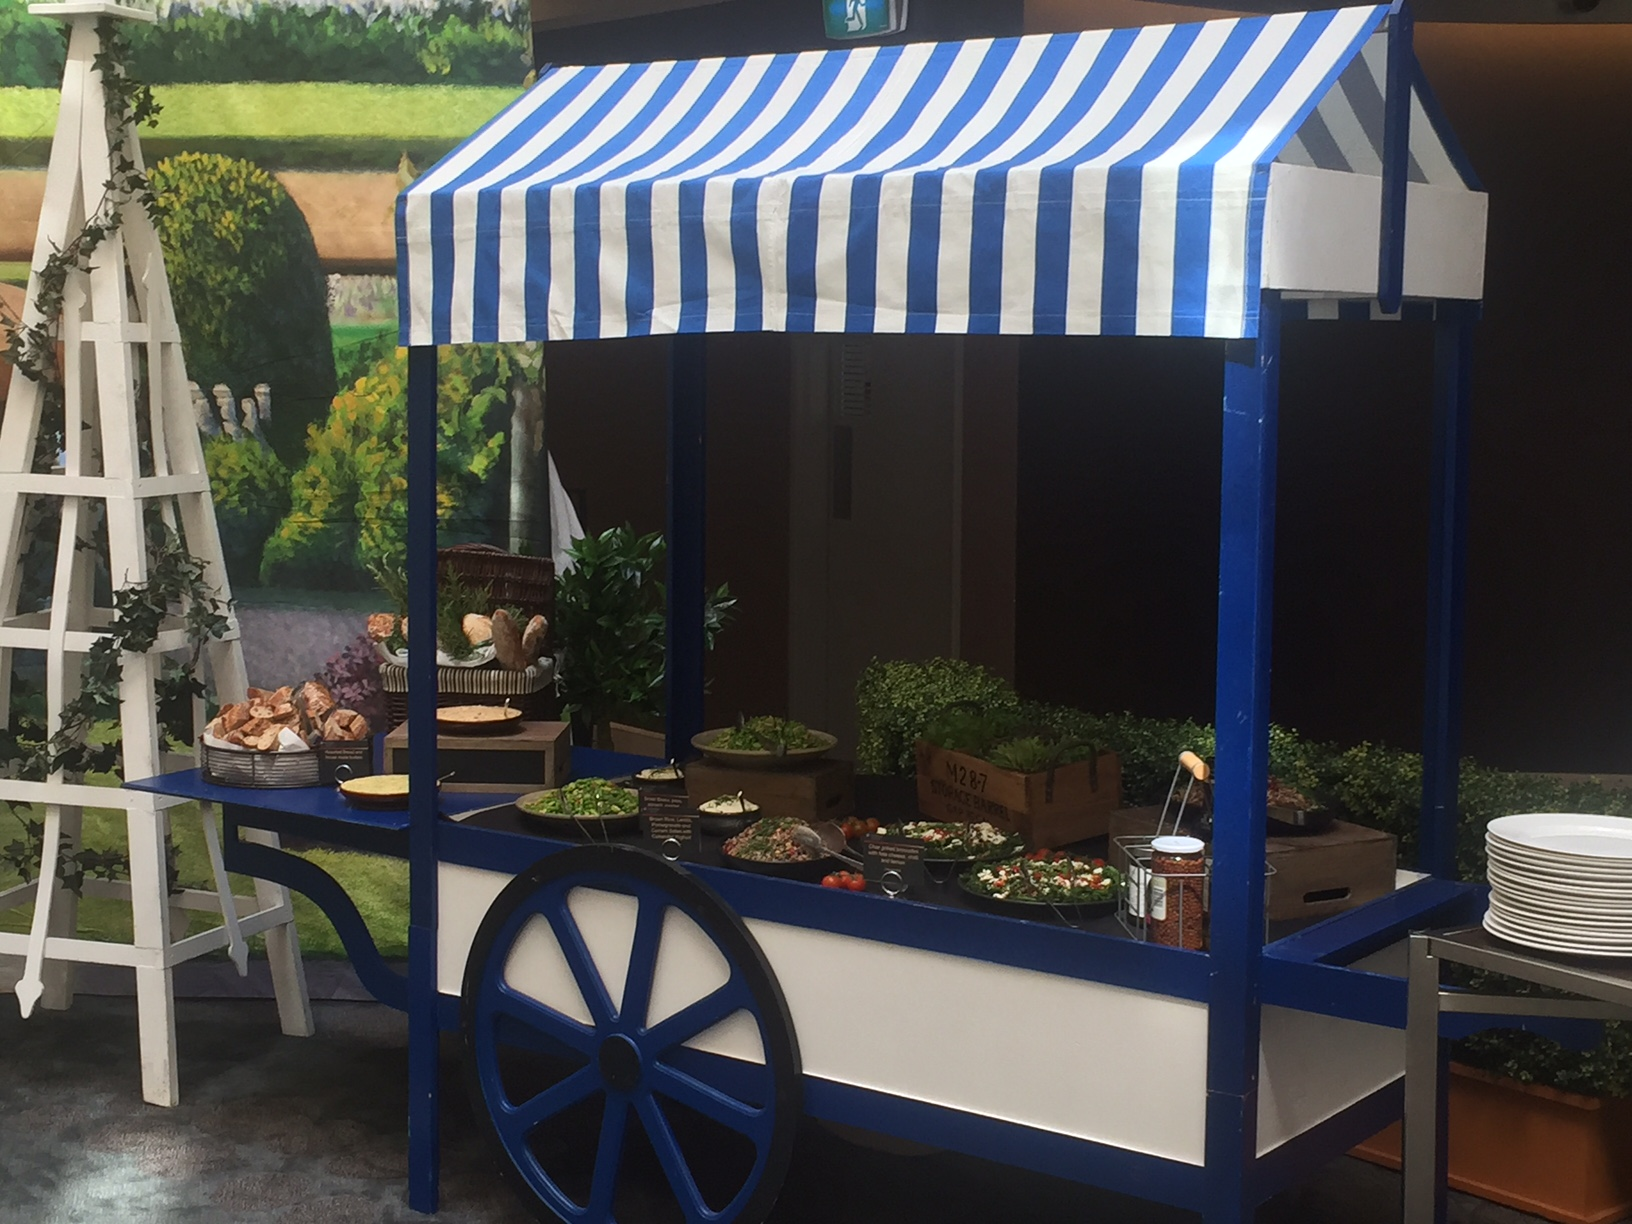 blue Food Cart